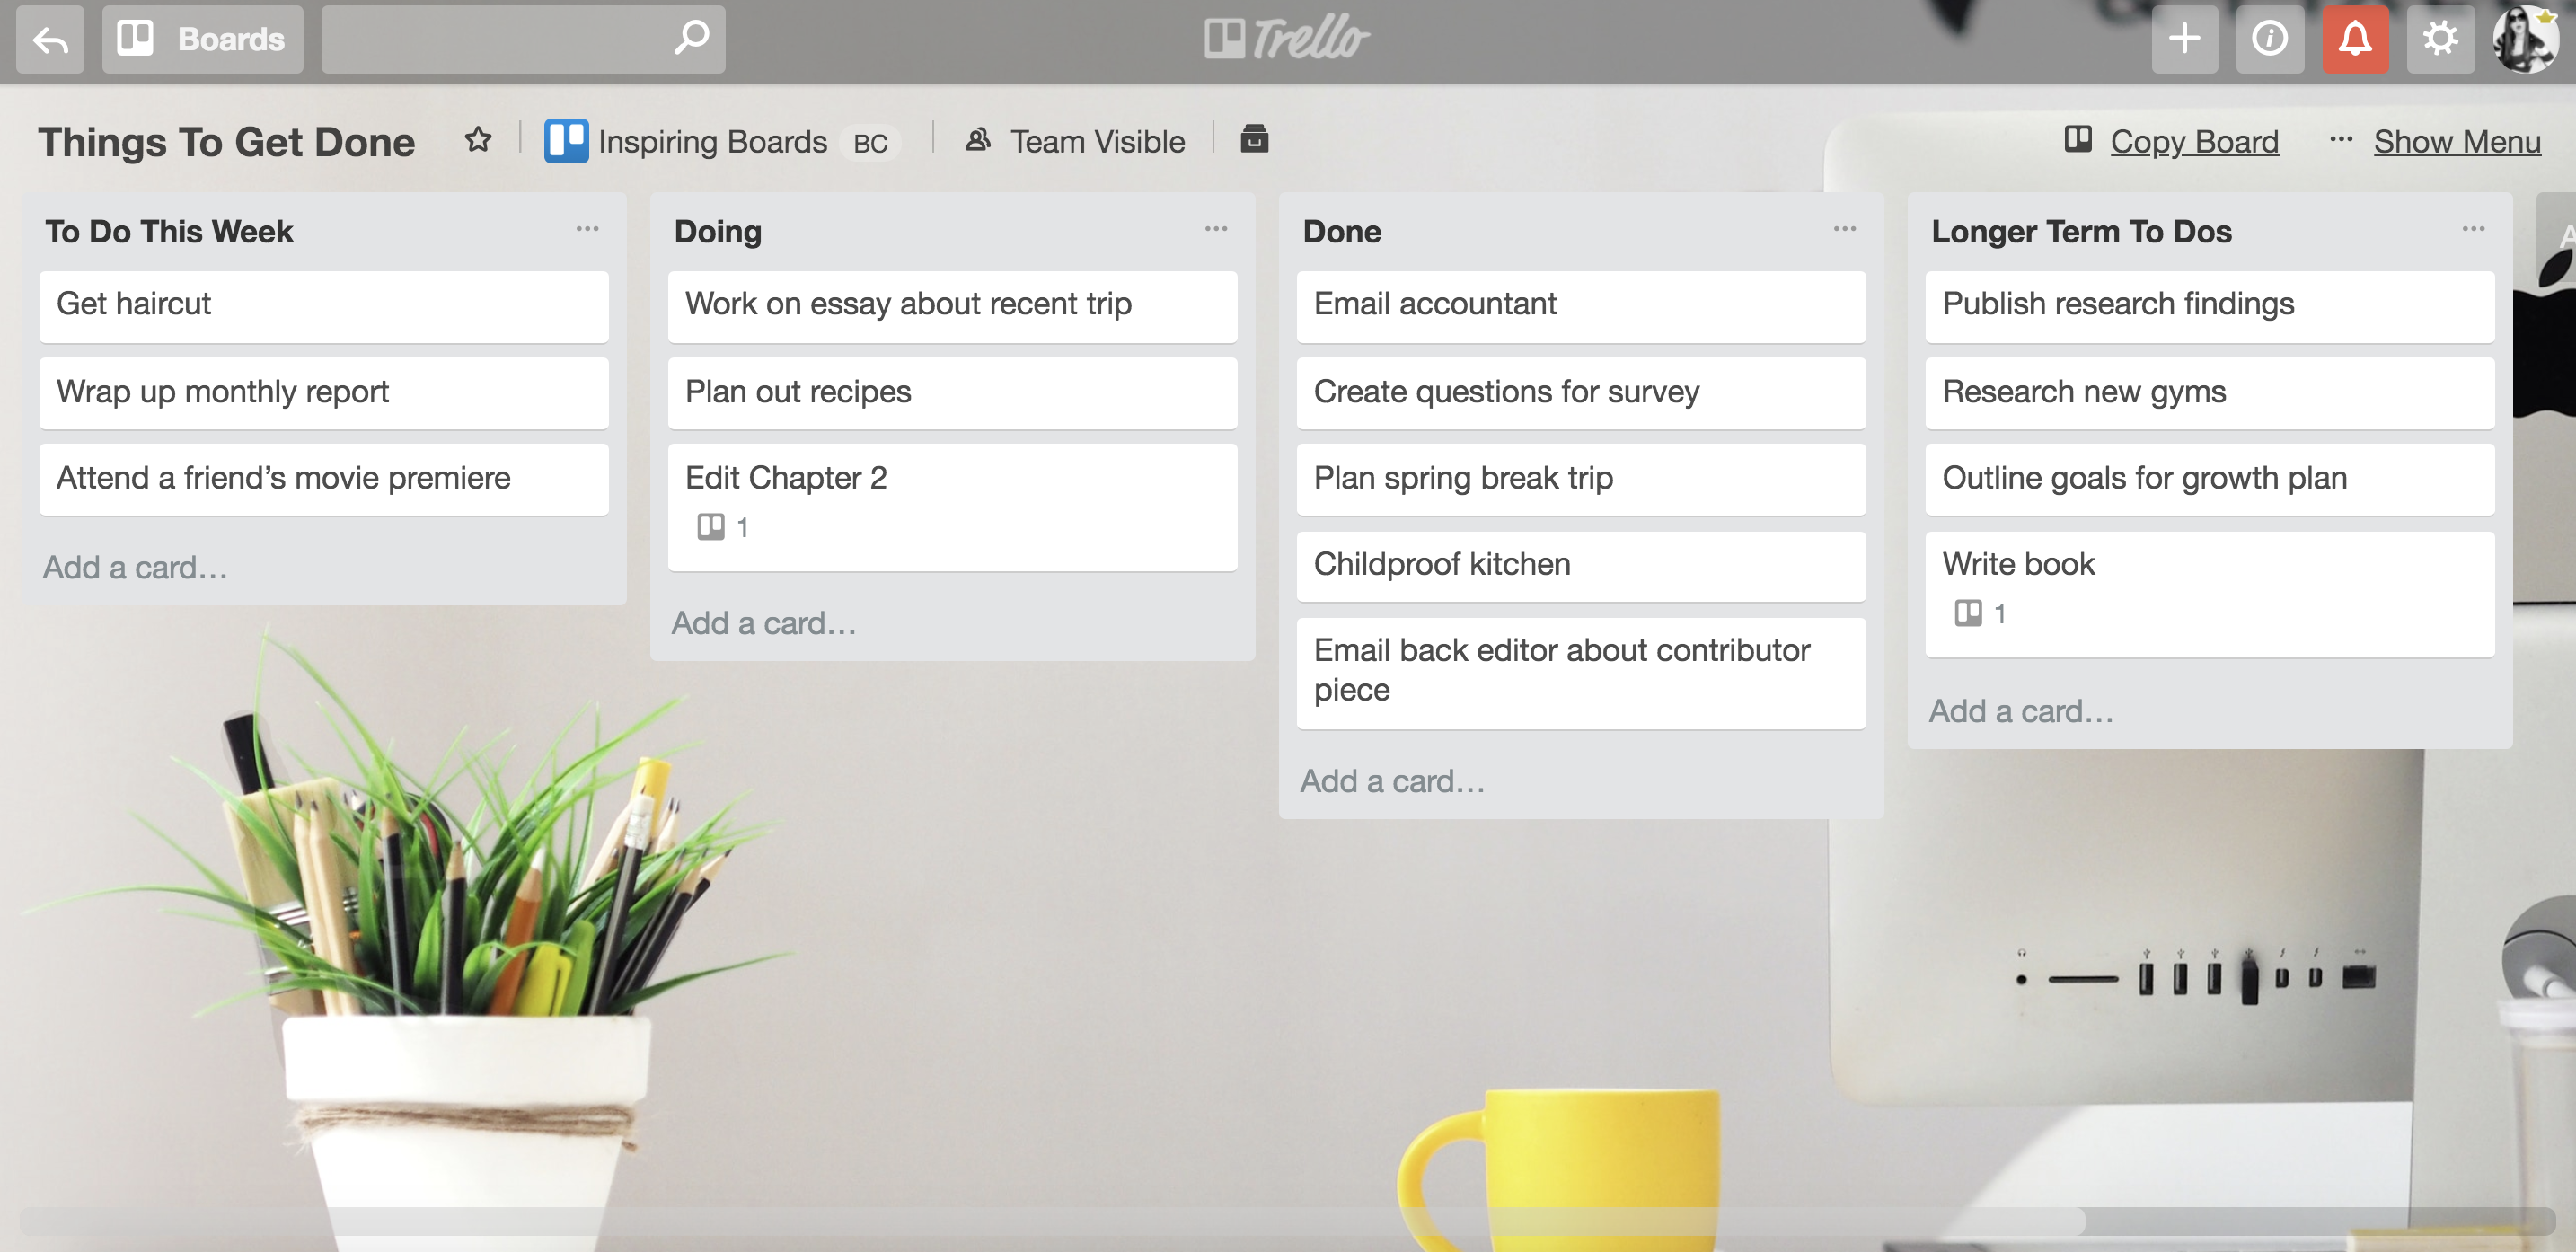 Trello board example of weekly to-do list